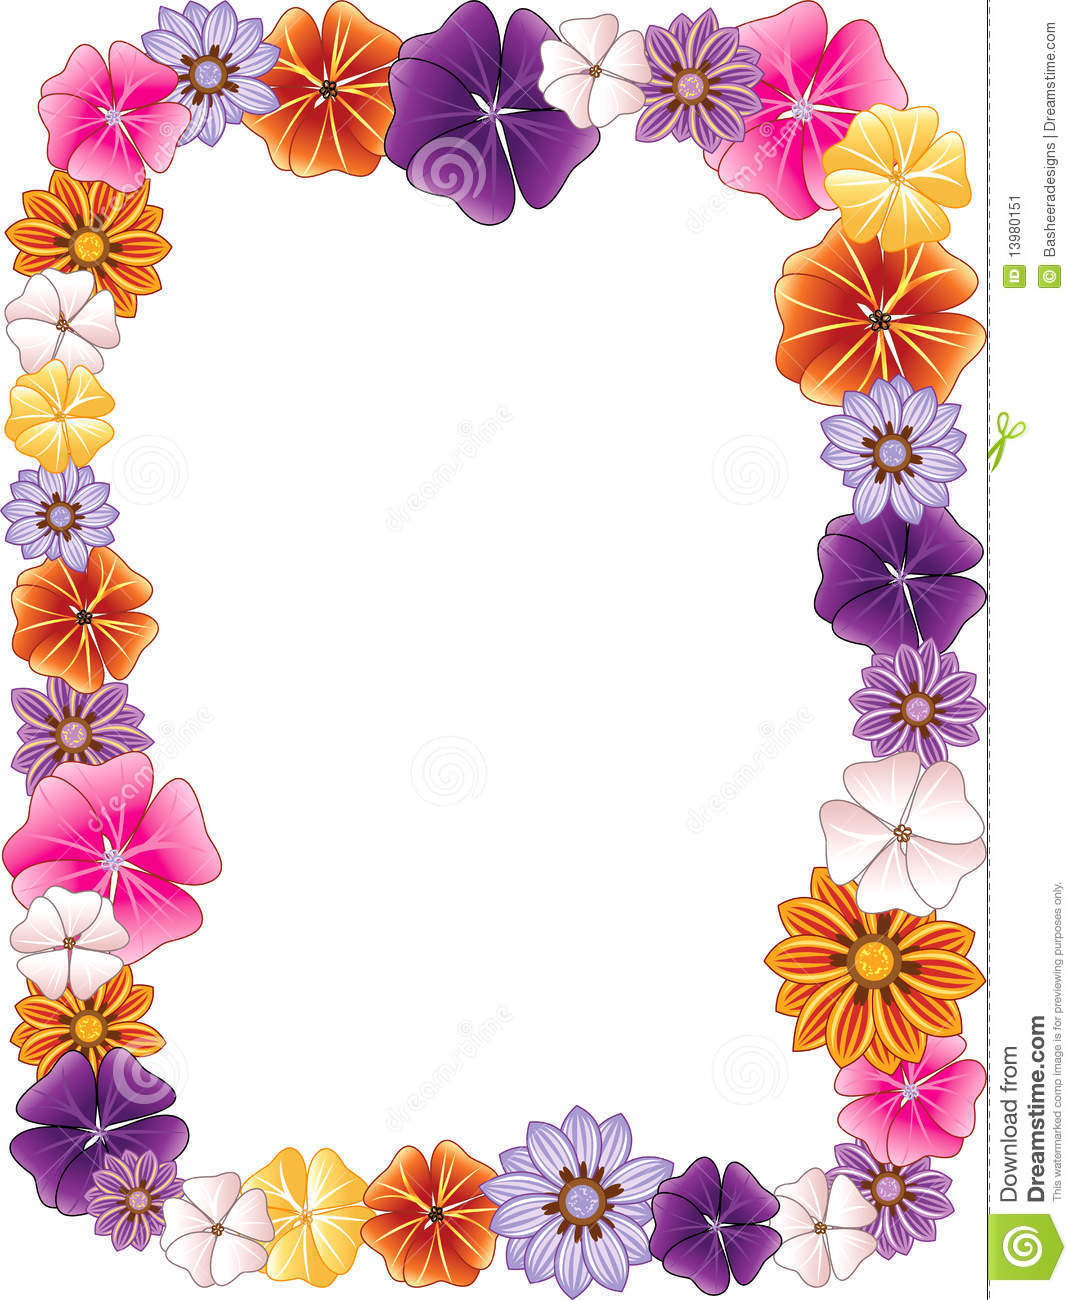 Flowers and borders svg free download Flowers Border Clipart - Clipart Kid svg free download